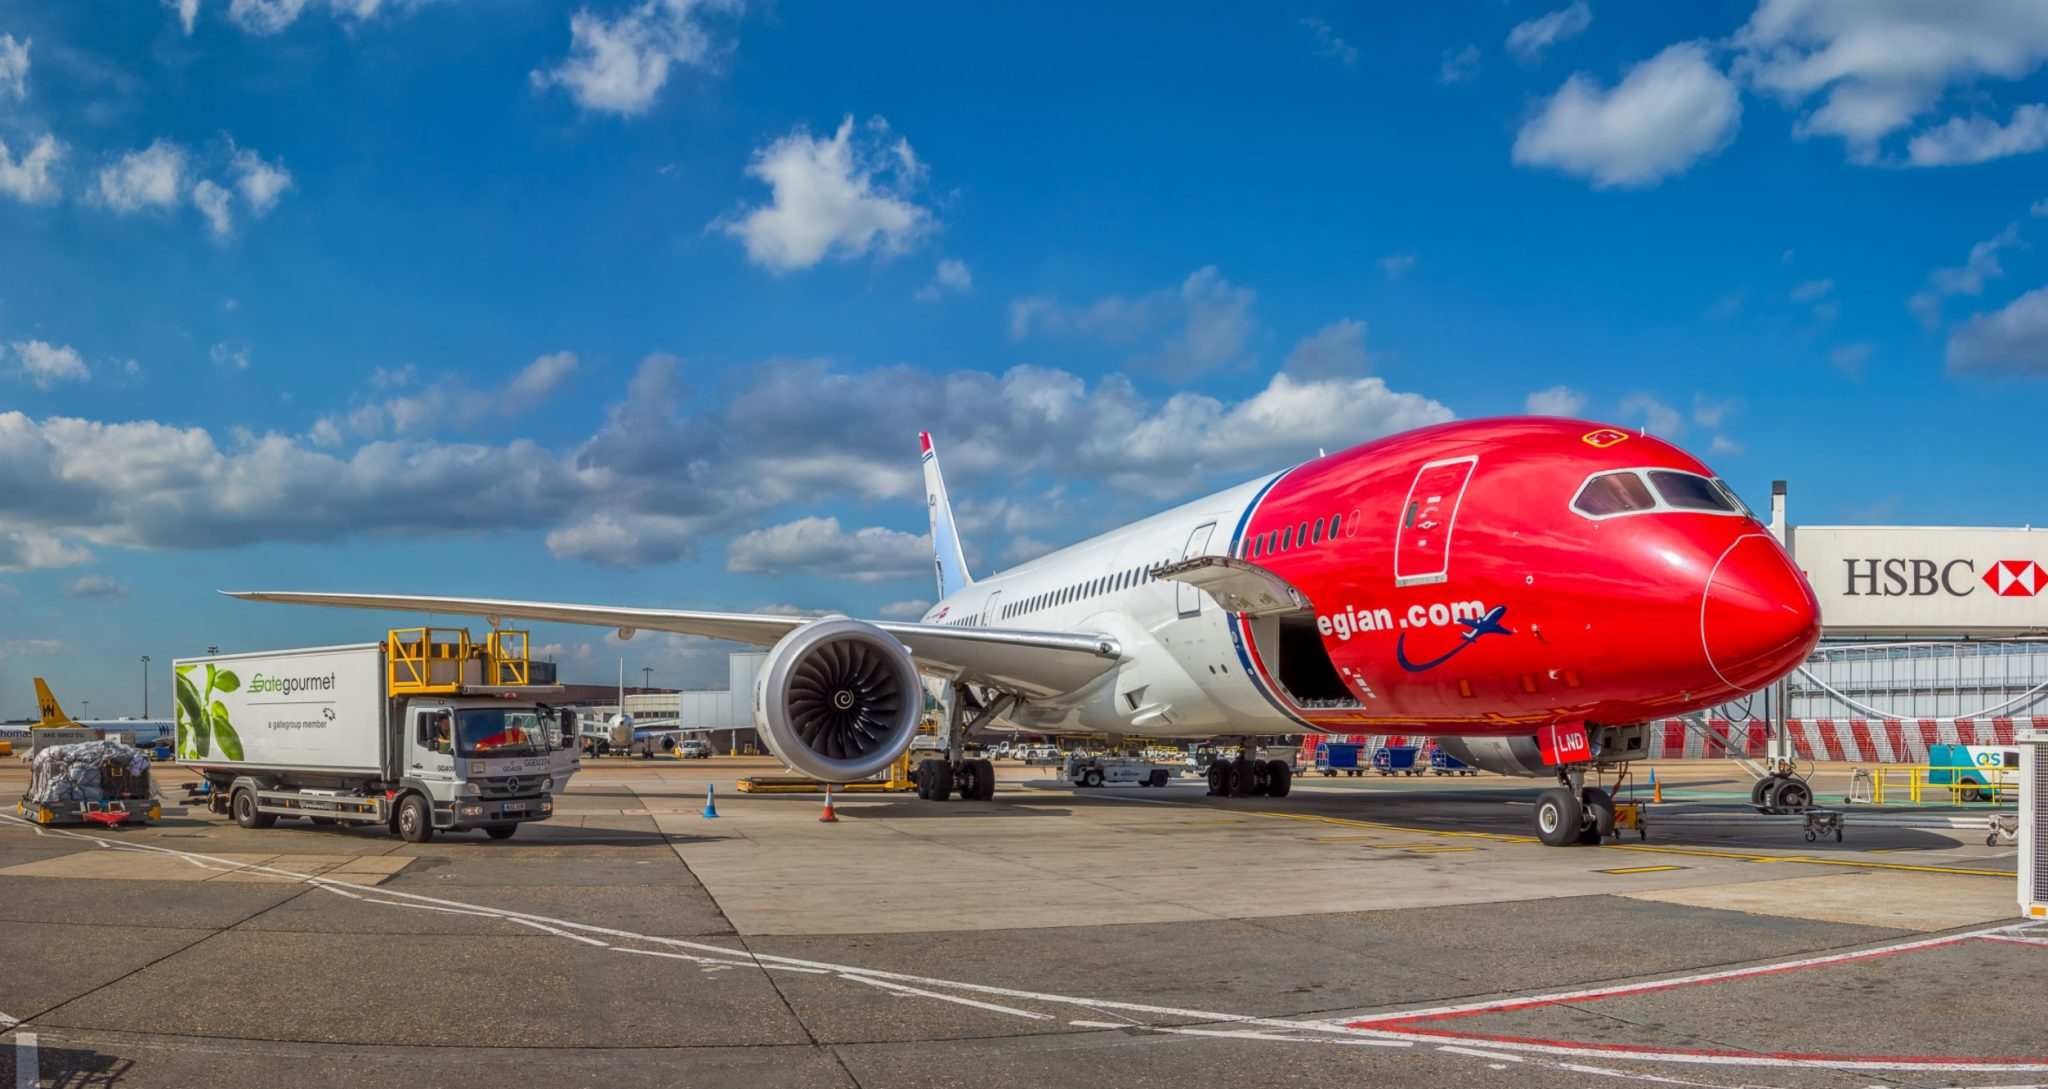 Norwegian to launch new flights to Chicago and Austin in spring 2018